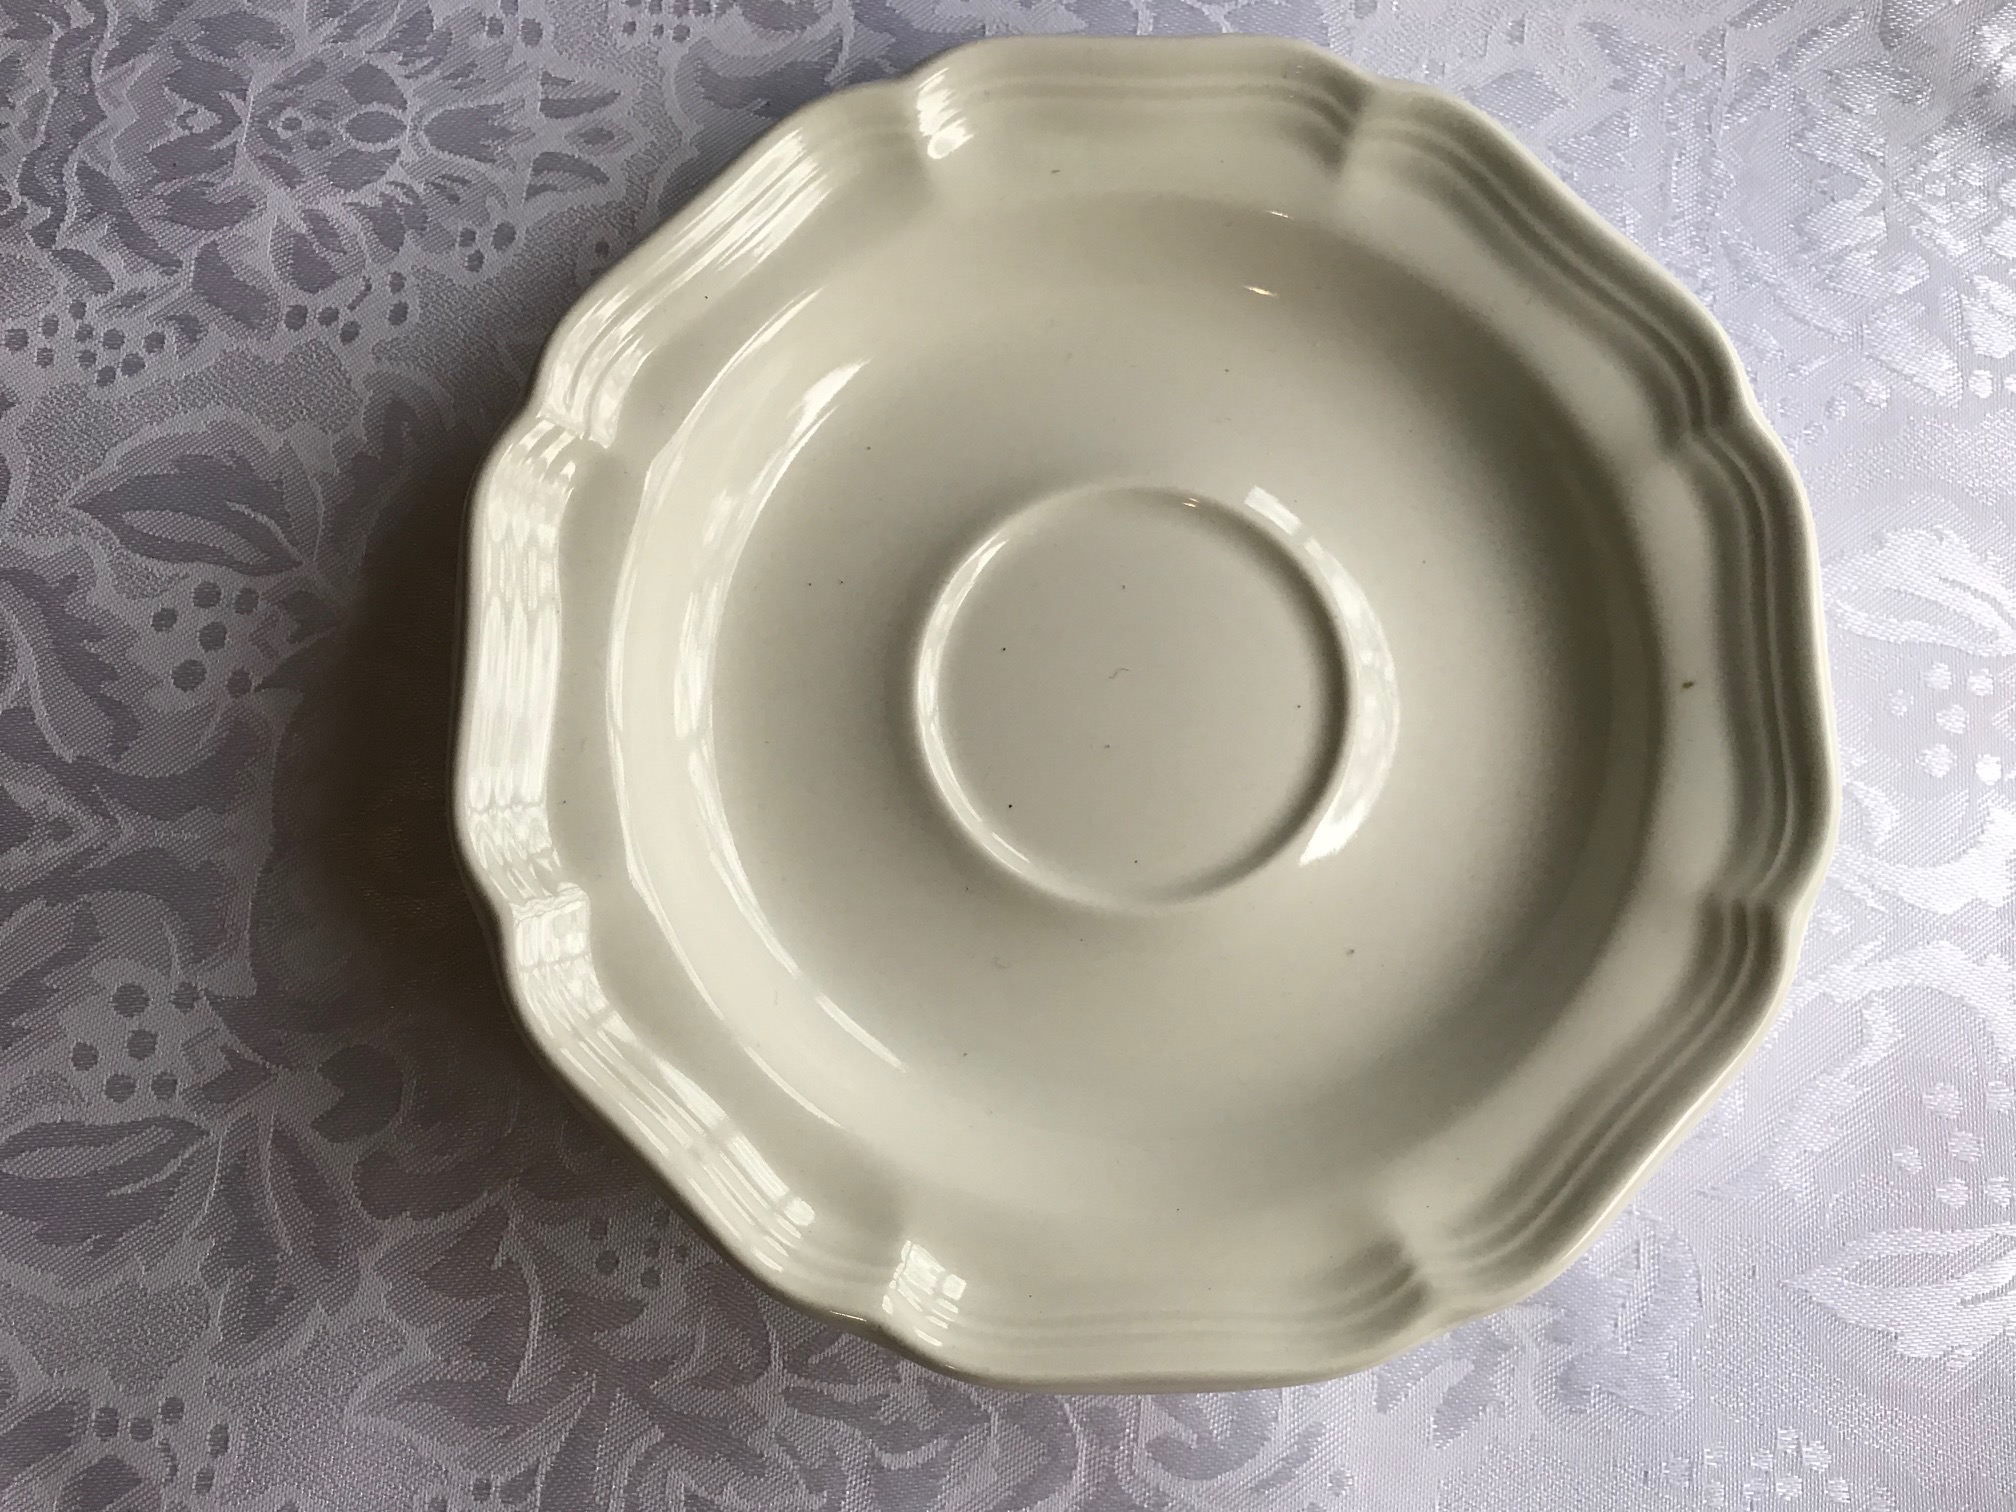 "Small White ""French Countryside"" Mikasa Saucer: 638 ppm Lead on the back logo."